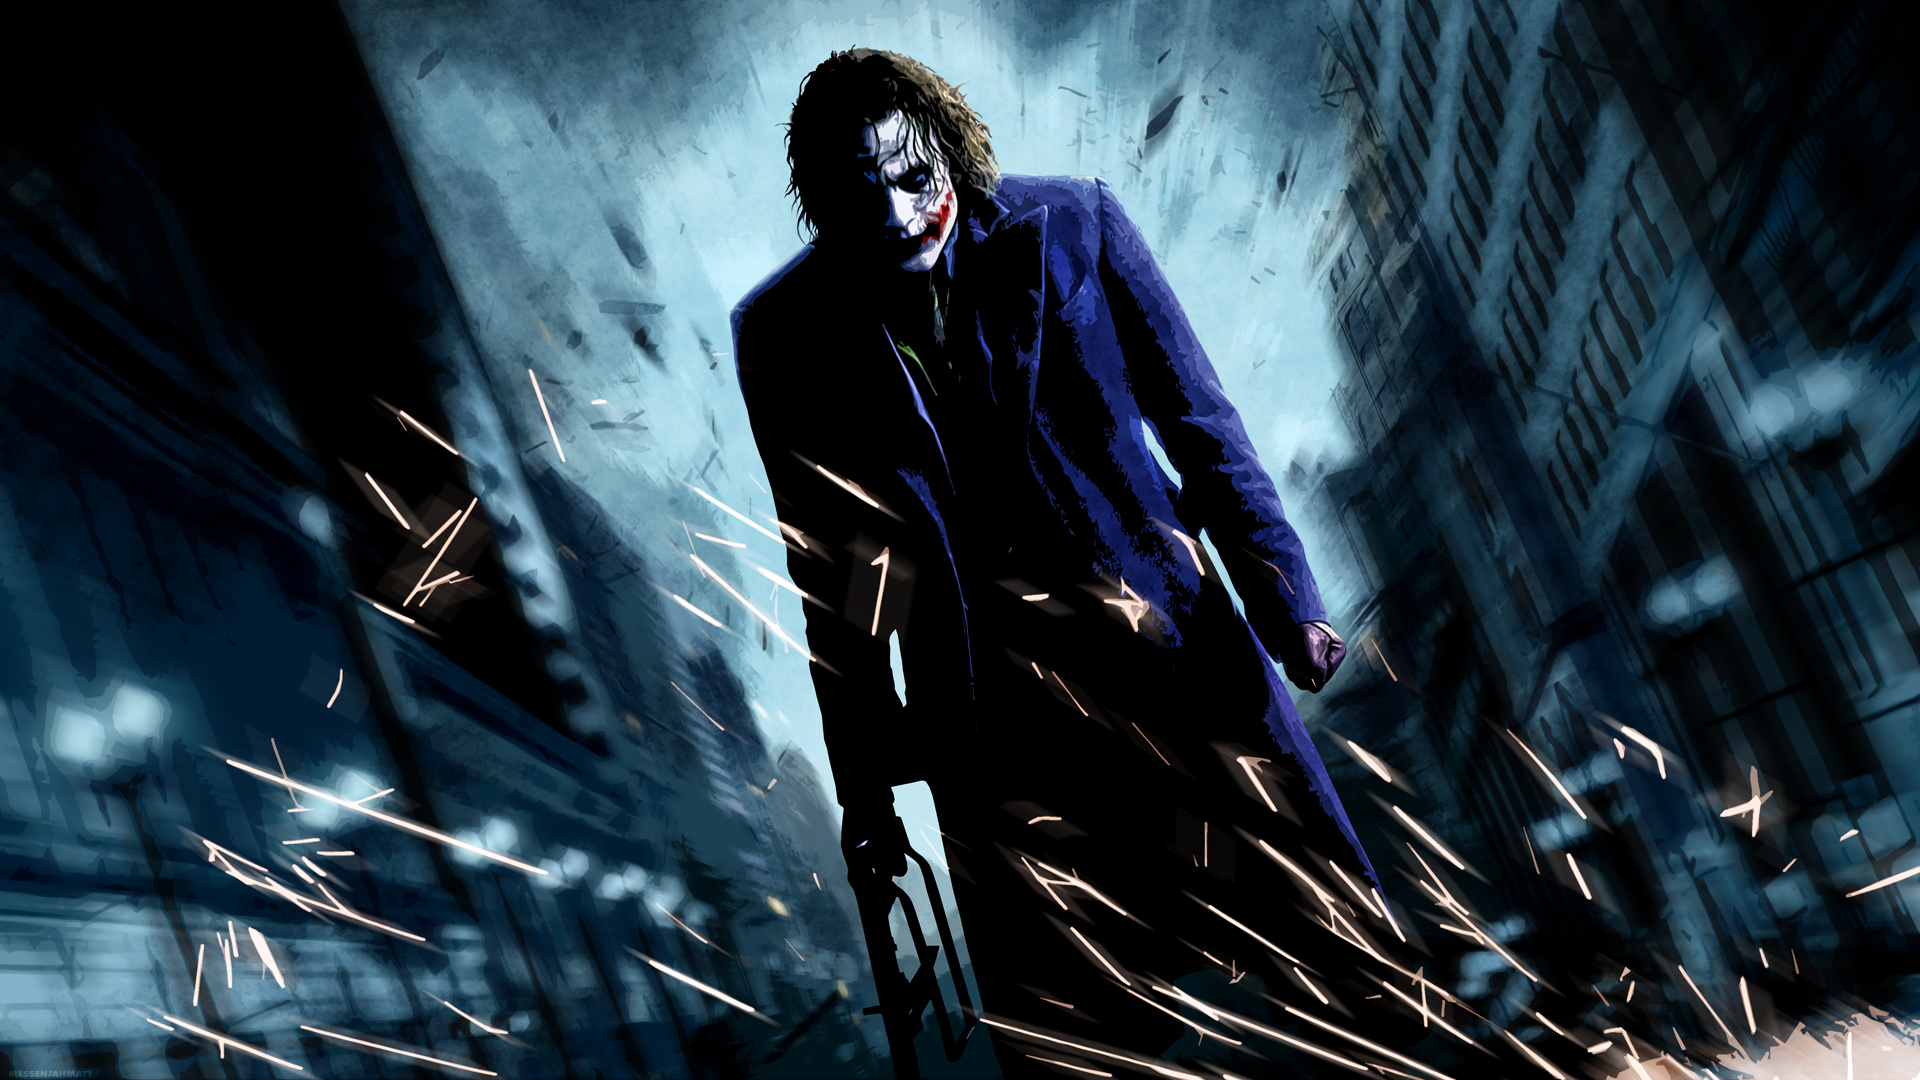 The Joker In Batman The Dark Knight Facing Batman | The ...